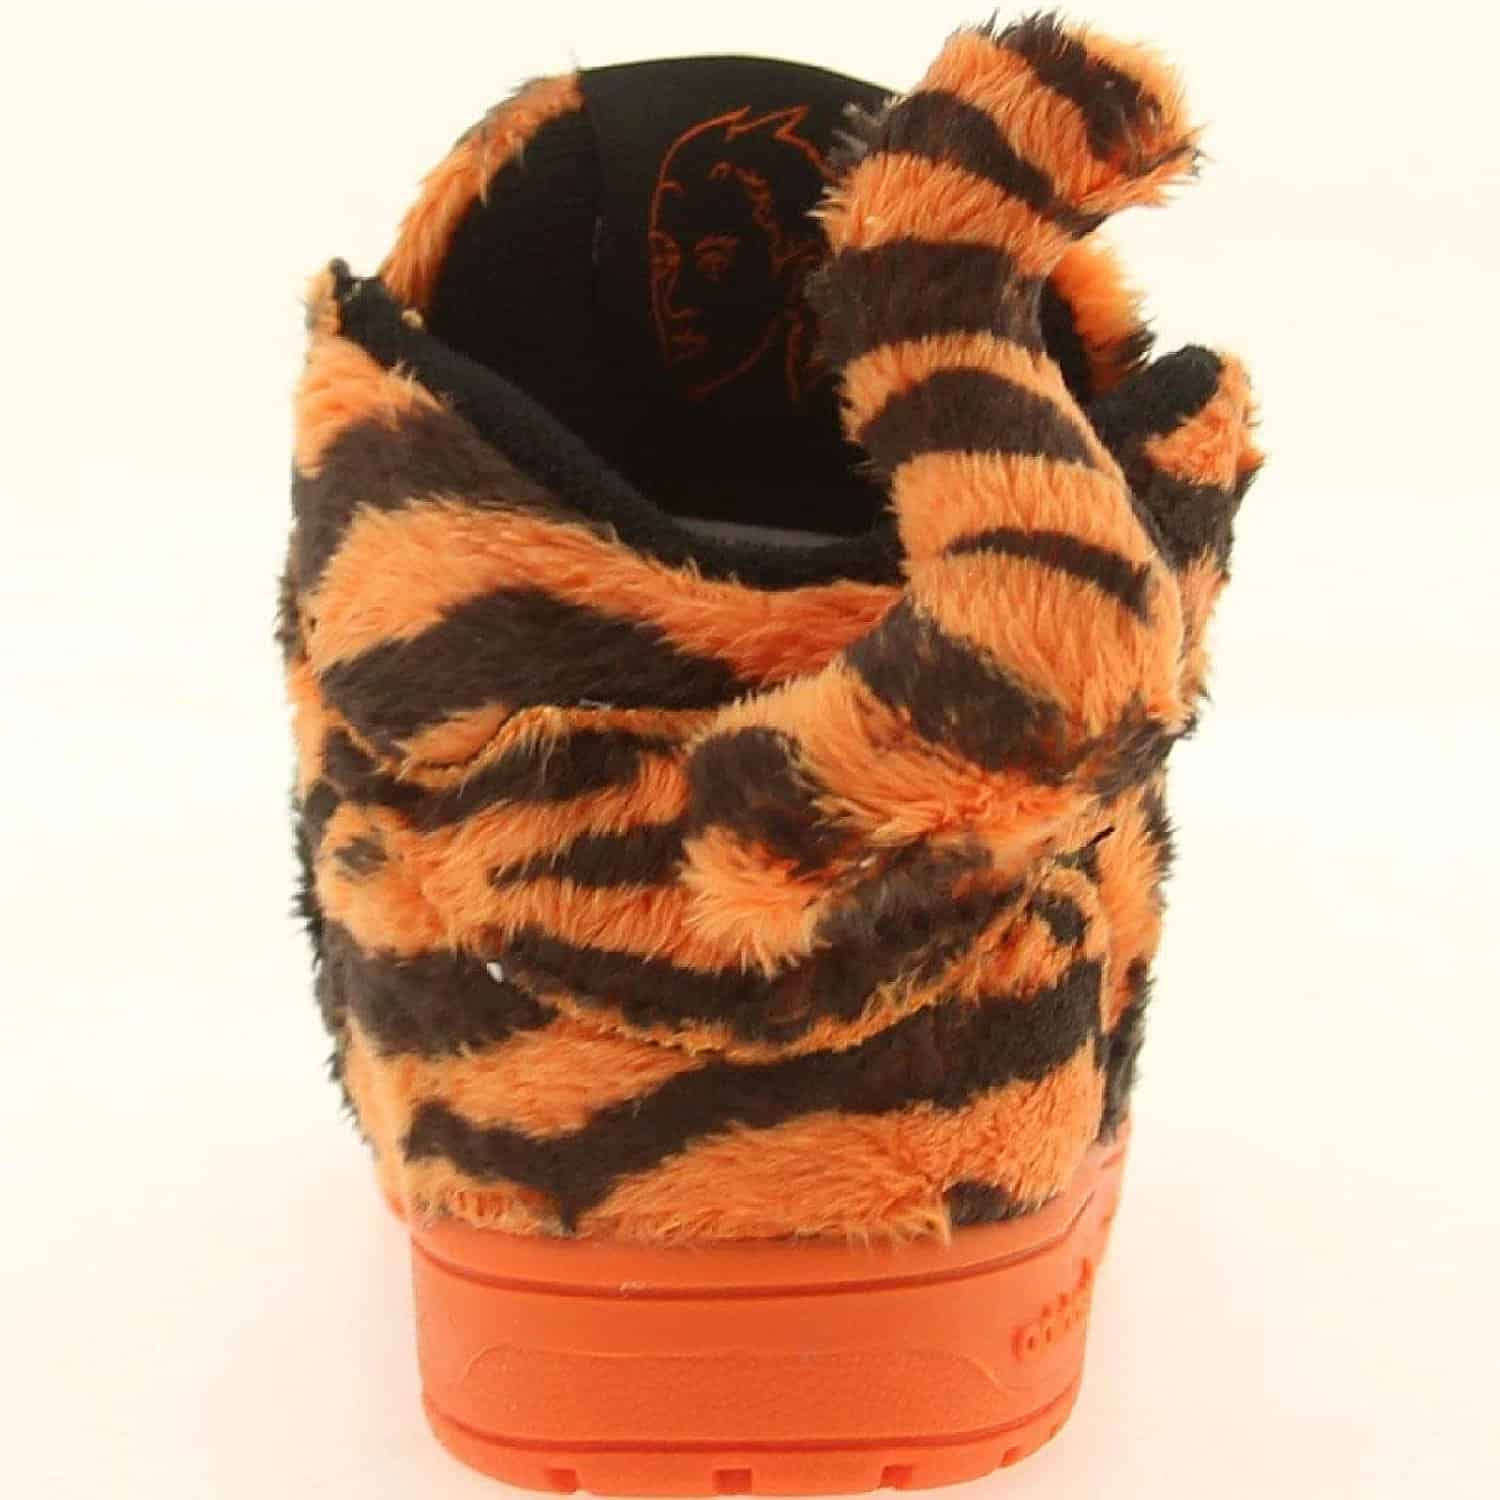 Adidas Jeremy Scott Tiger Fun Toddler Shoe